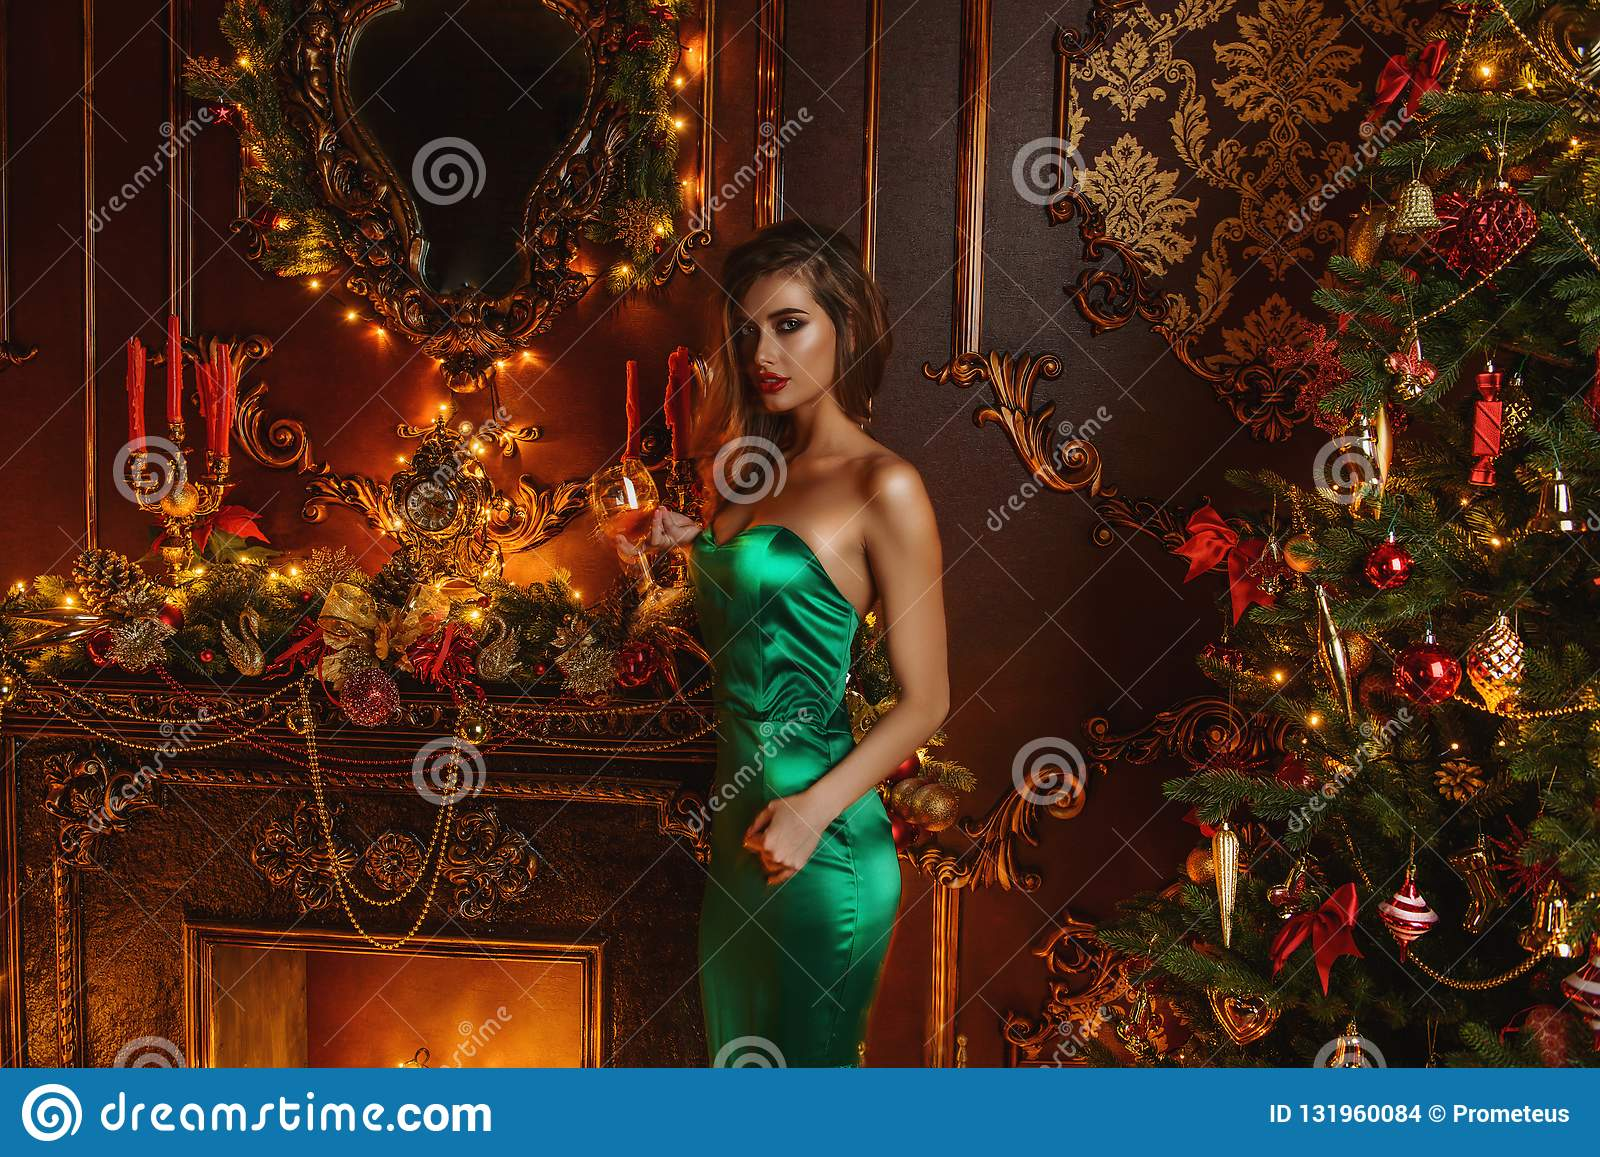 Lady in evening green dress